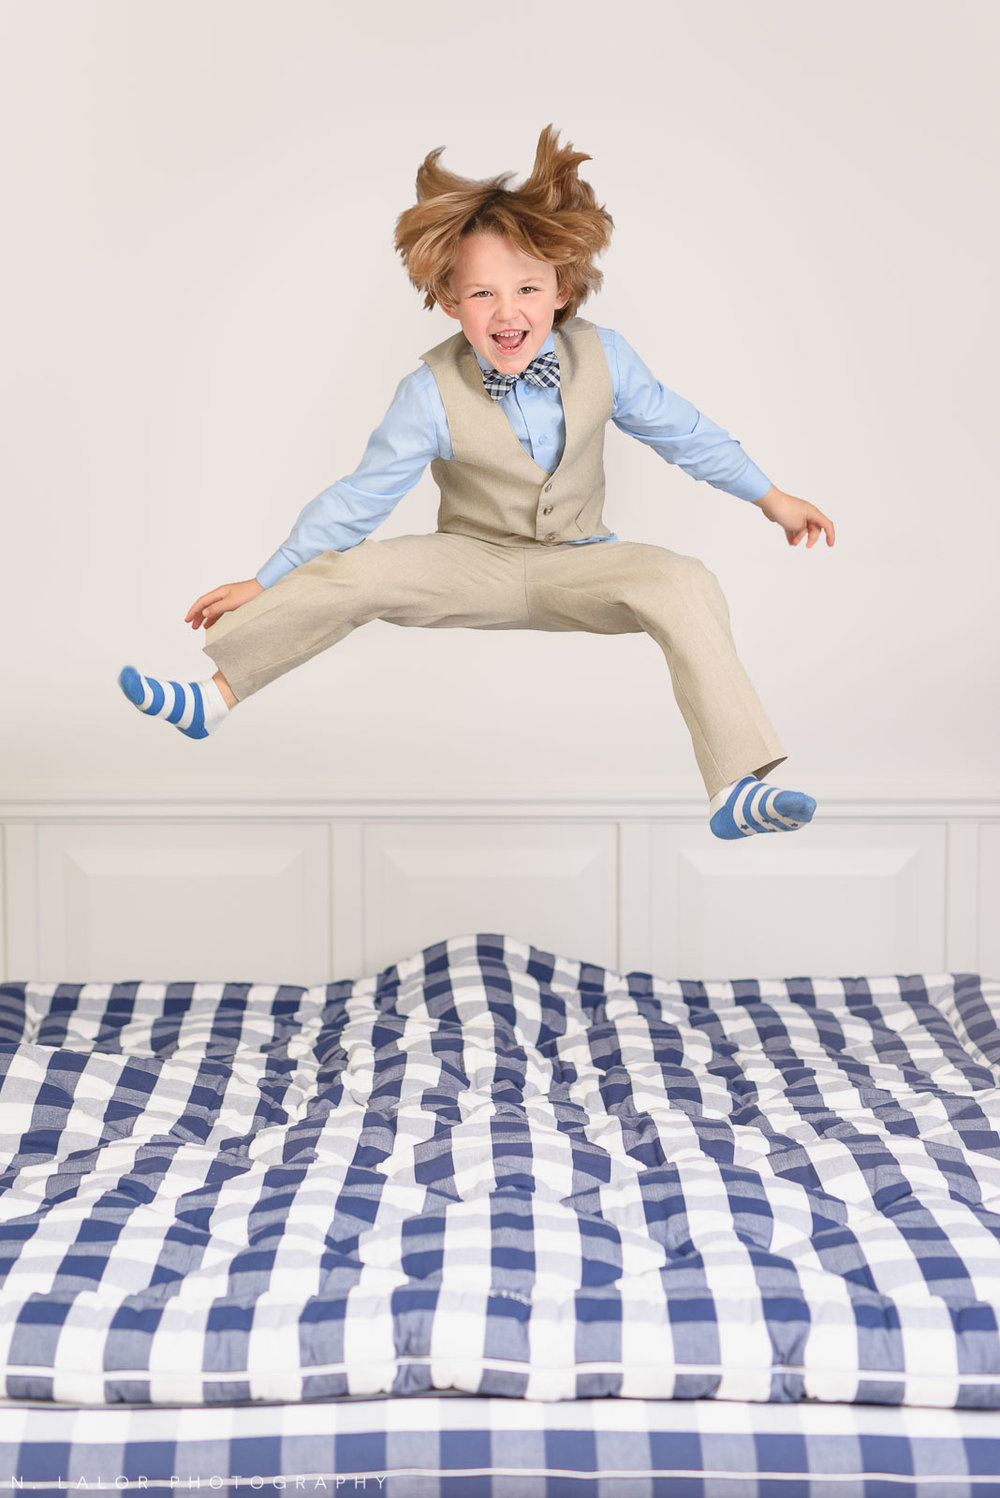 Boy having fun jumping on a Hästens bed. Limited-edition exclusive event with N. Lalor Photography and Hästens in Greenwich, Connecticut.